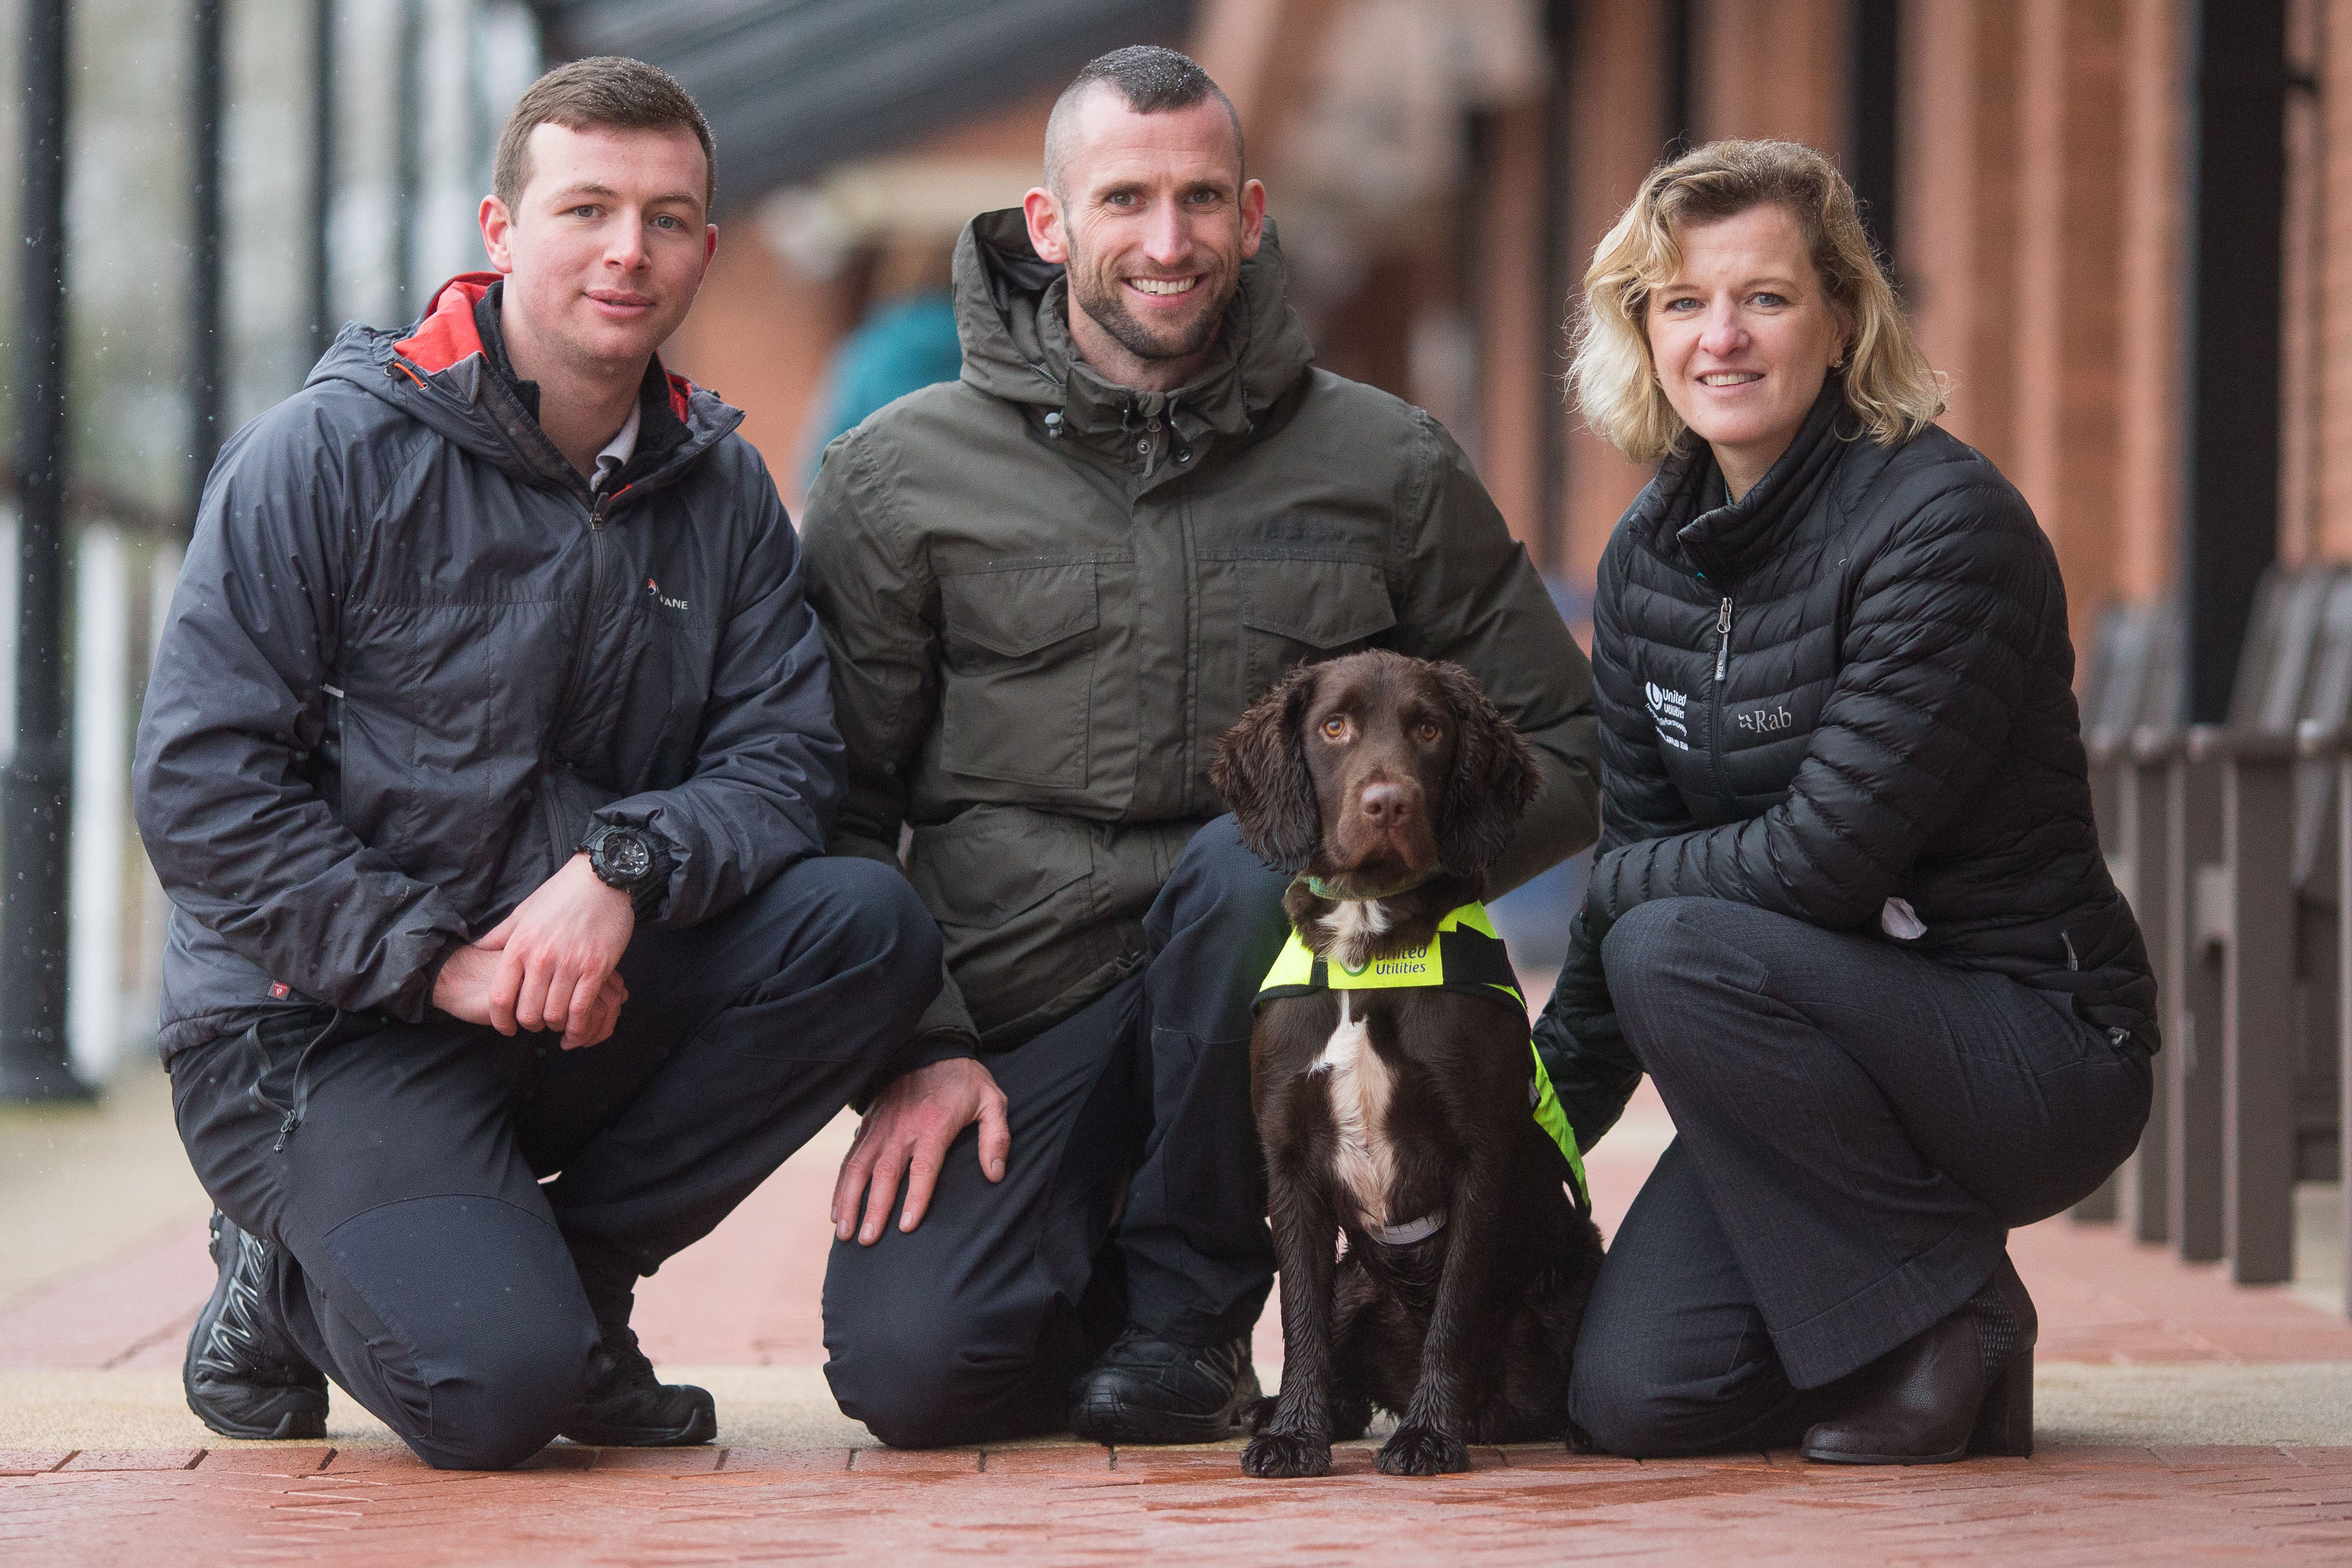 Snipe the dog, with, from left, Luke Jones, Ross Stephenson and Hannah Wardle (Aaron Chown/PA)